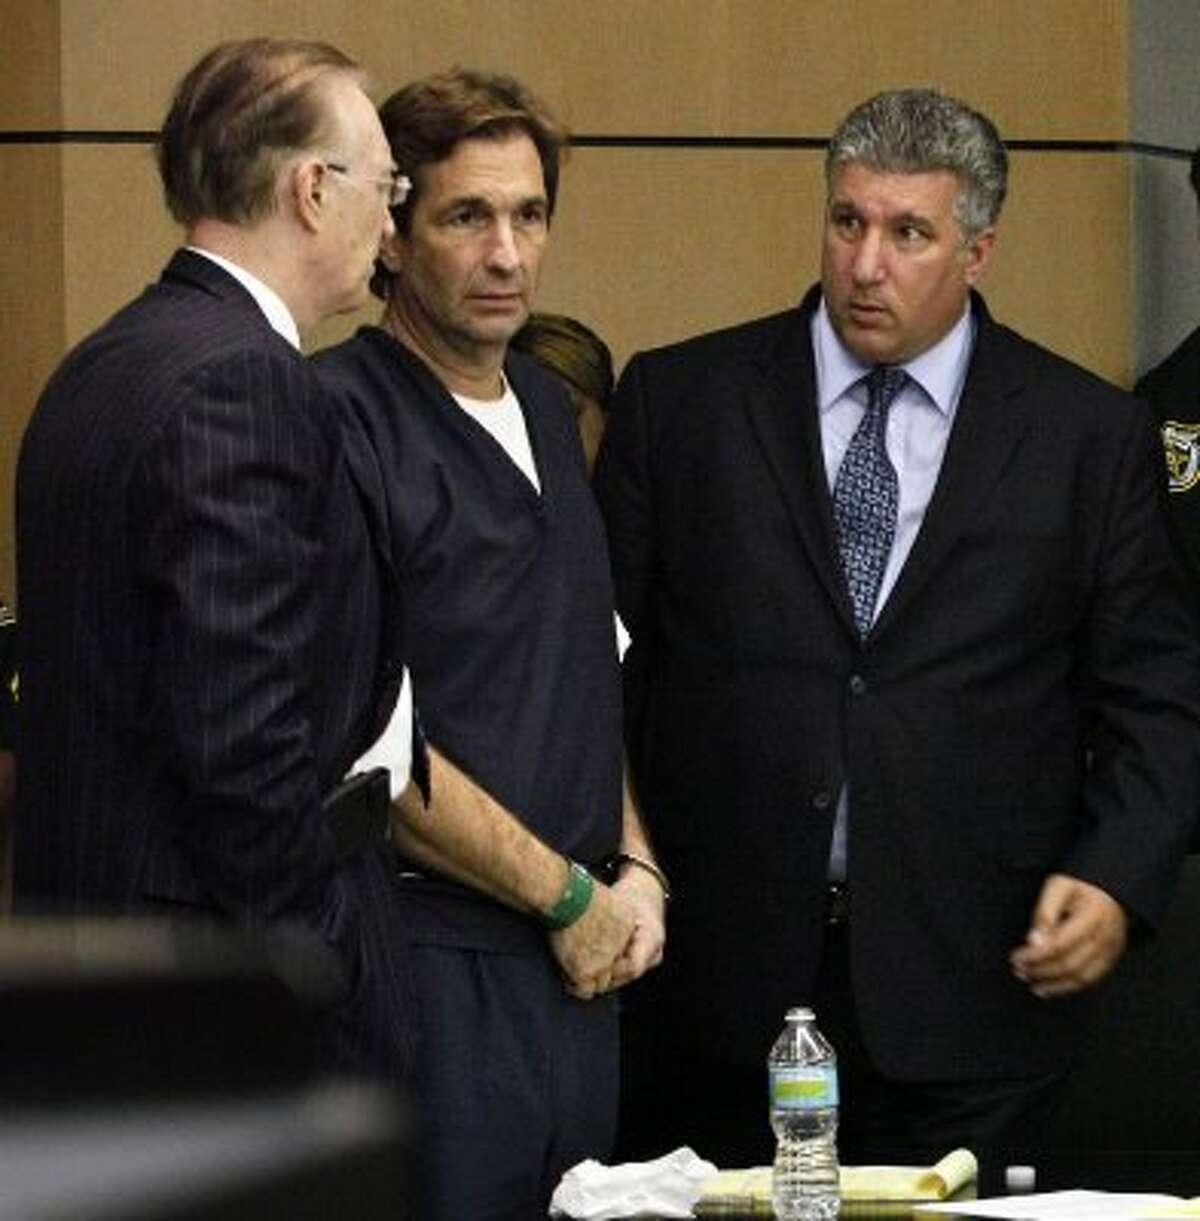 John Goodman, center, talks with his attorneys Roy Black and Guy Fronstin during his sentencing hearing on May 11 in West Palm Beach, Fla. (AP Photo/The Palm Beach Post, Lannis Waters, Pool) (Lannis Waters / Associated Press)